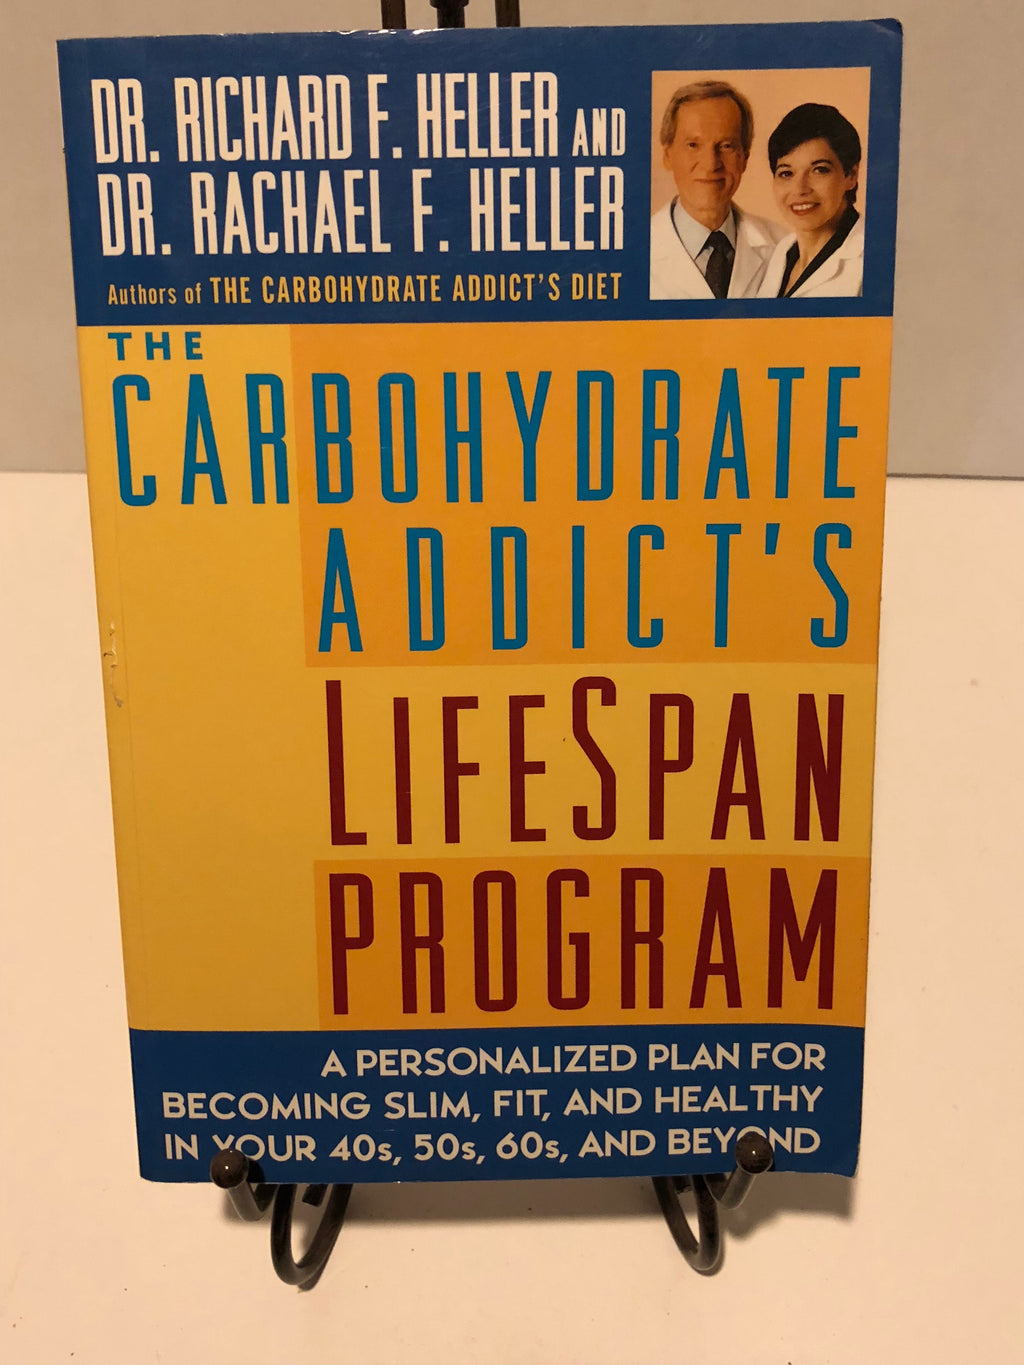 Carbohydrate Addict's Lifespan Program: Personalized Plan for bcmg Slim Fit Healthy your 40s 50s 60s Beyond, The